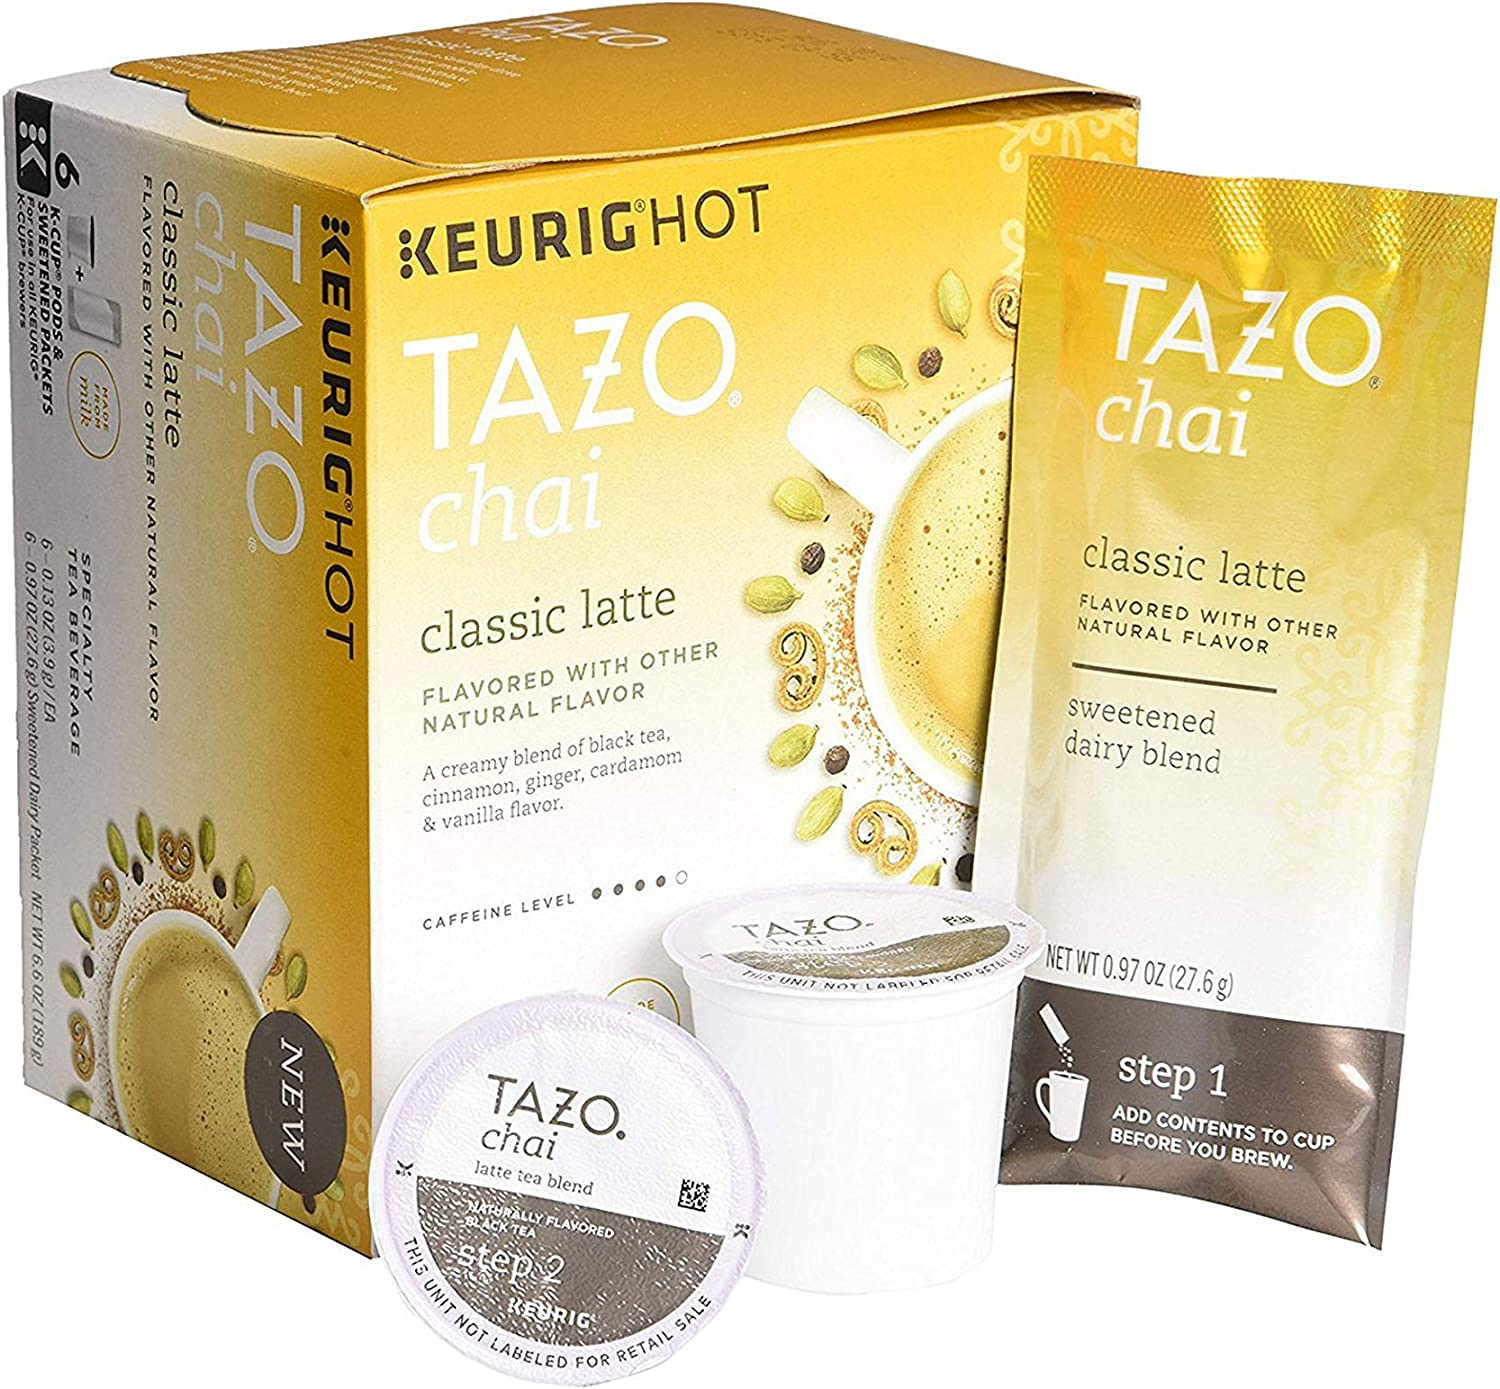 Tazo Chai Classic Latte Tea 6 Keurig K-Cups + 6 Froth Packets (Packaging May Vary)